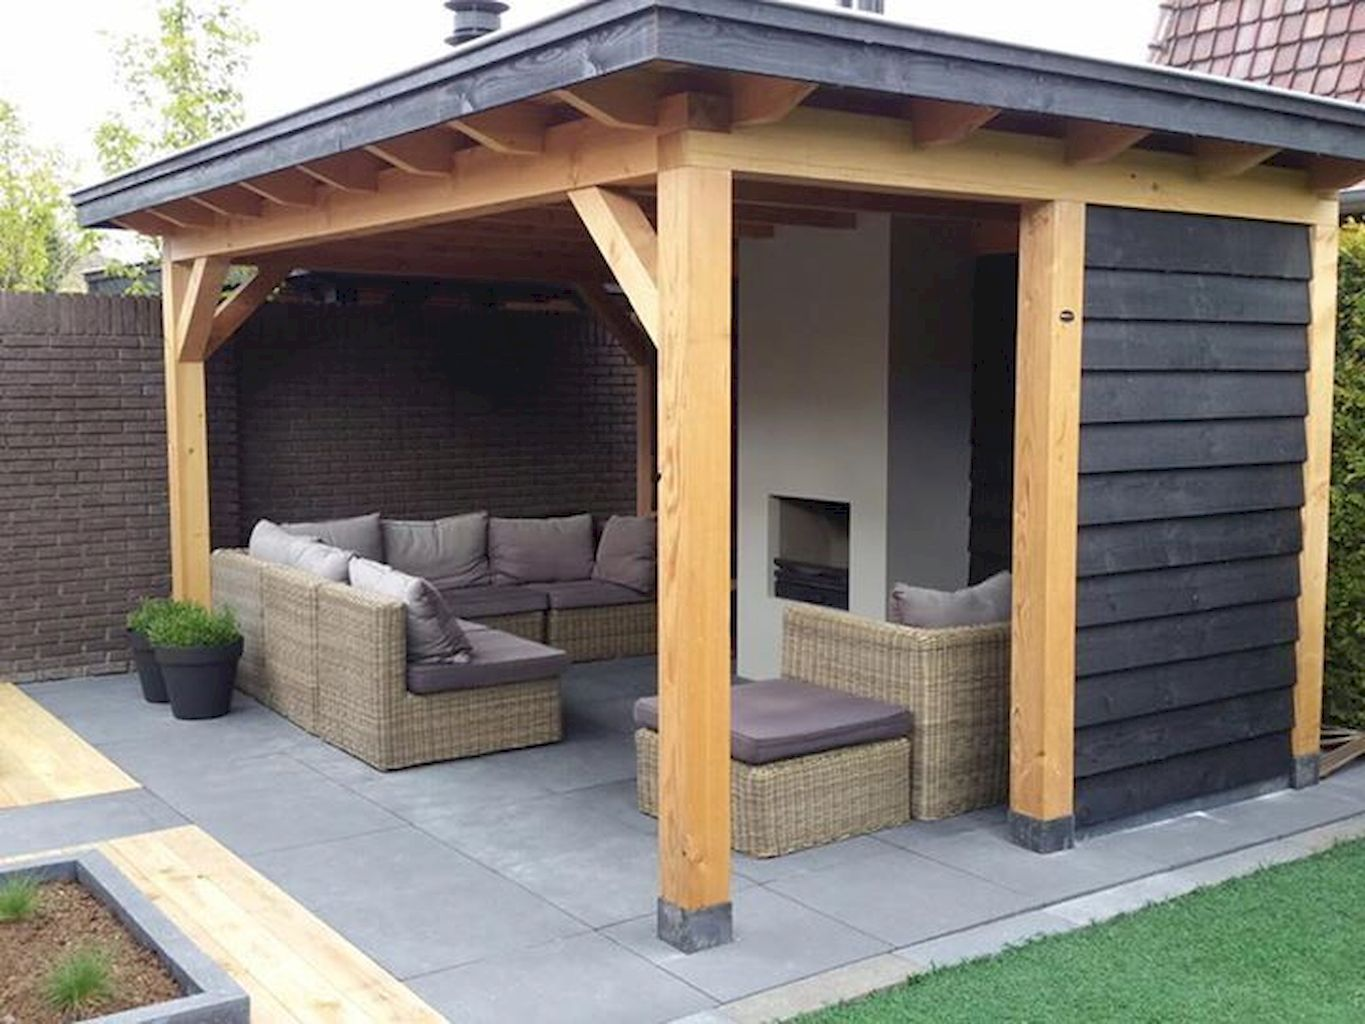 Awesome Gazebo Backyard Ideas - javgohome-Home Inspiration #backyardideas